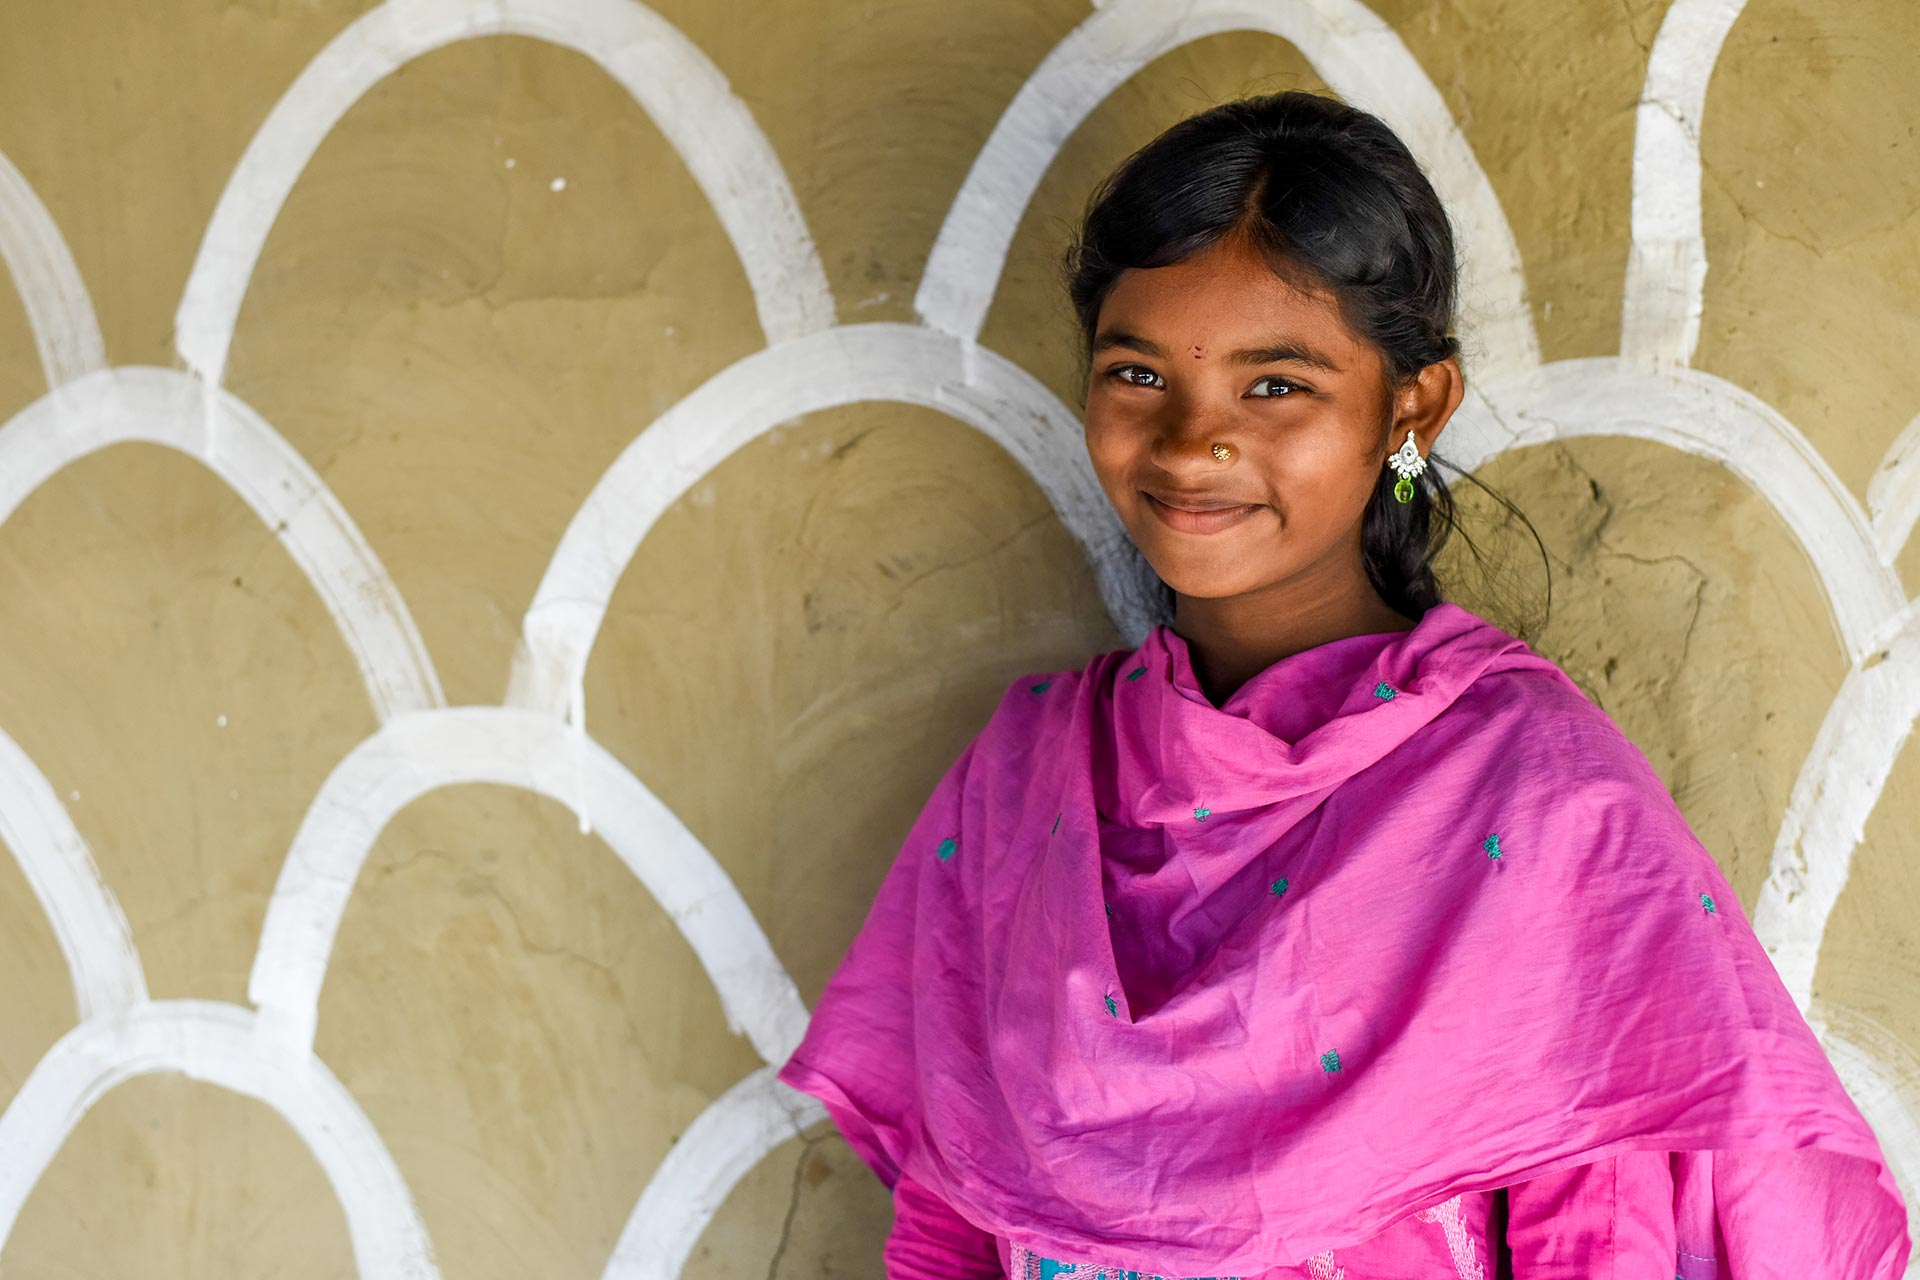 A girl stands against a white beige patterned wall. She's wearing a pink shawl and other bangladeshi attire.